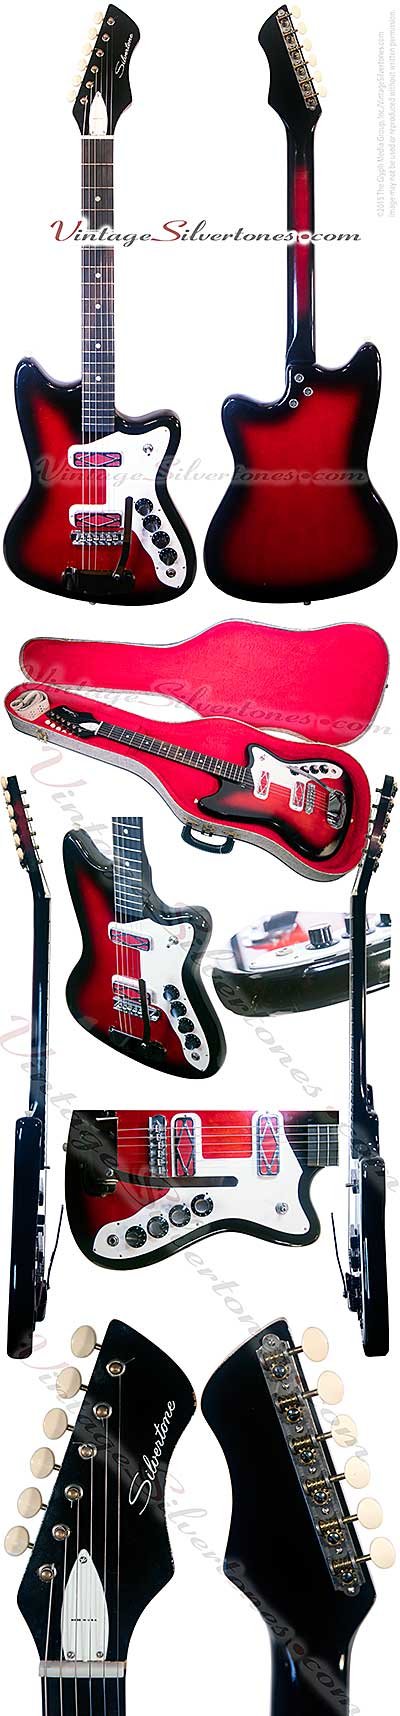 Silvertone -Harmony-made - 1479 solid body electric guitar with 1750 whammy bar double cutaway, redburst, 2 red pickups made 1967